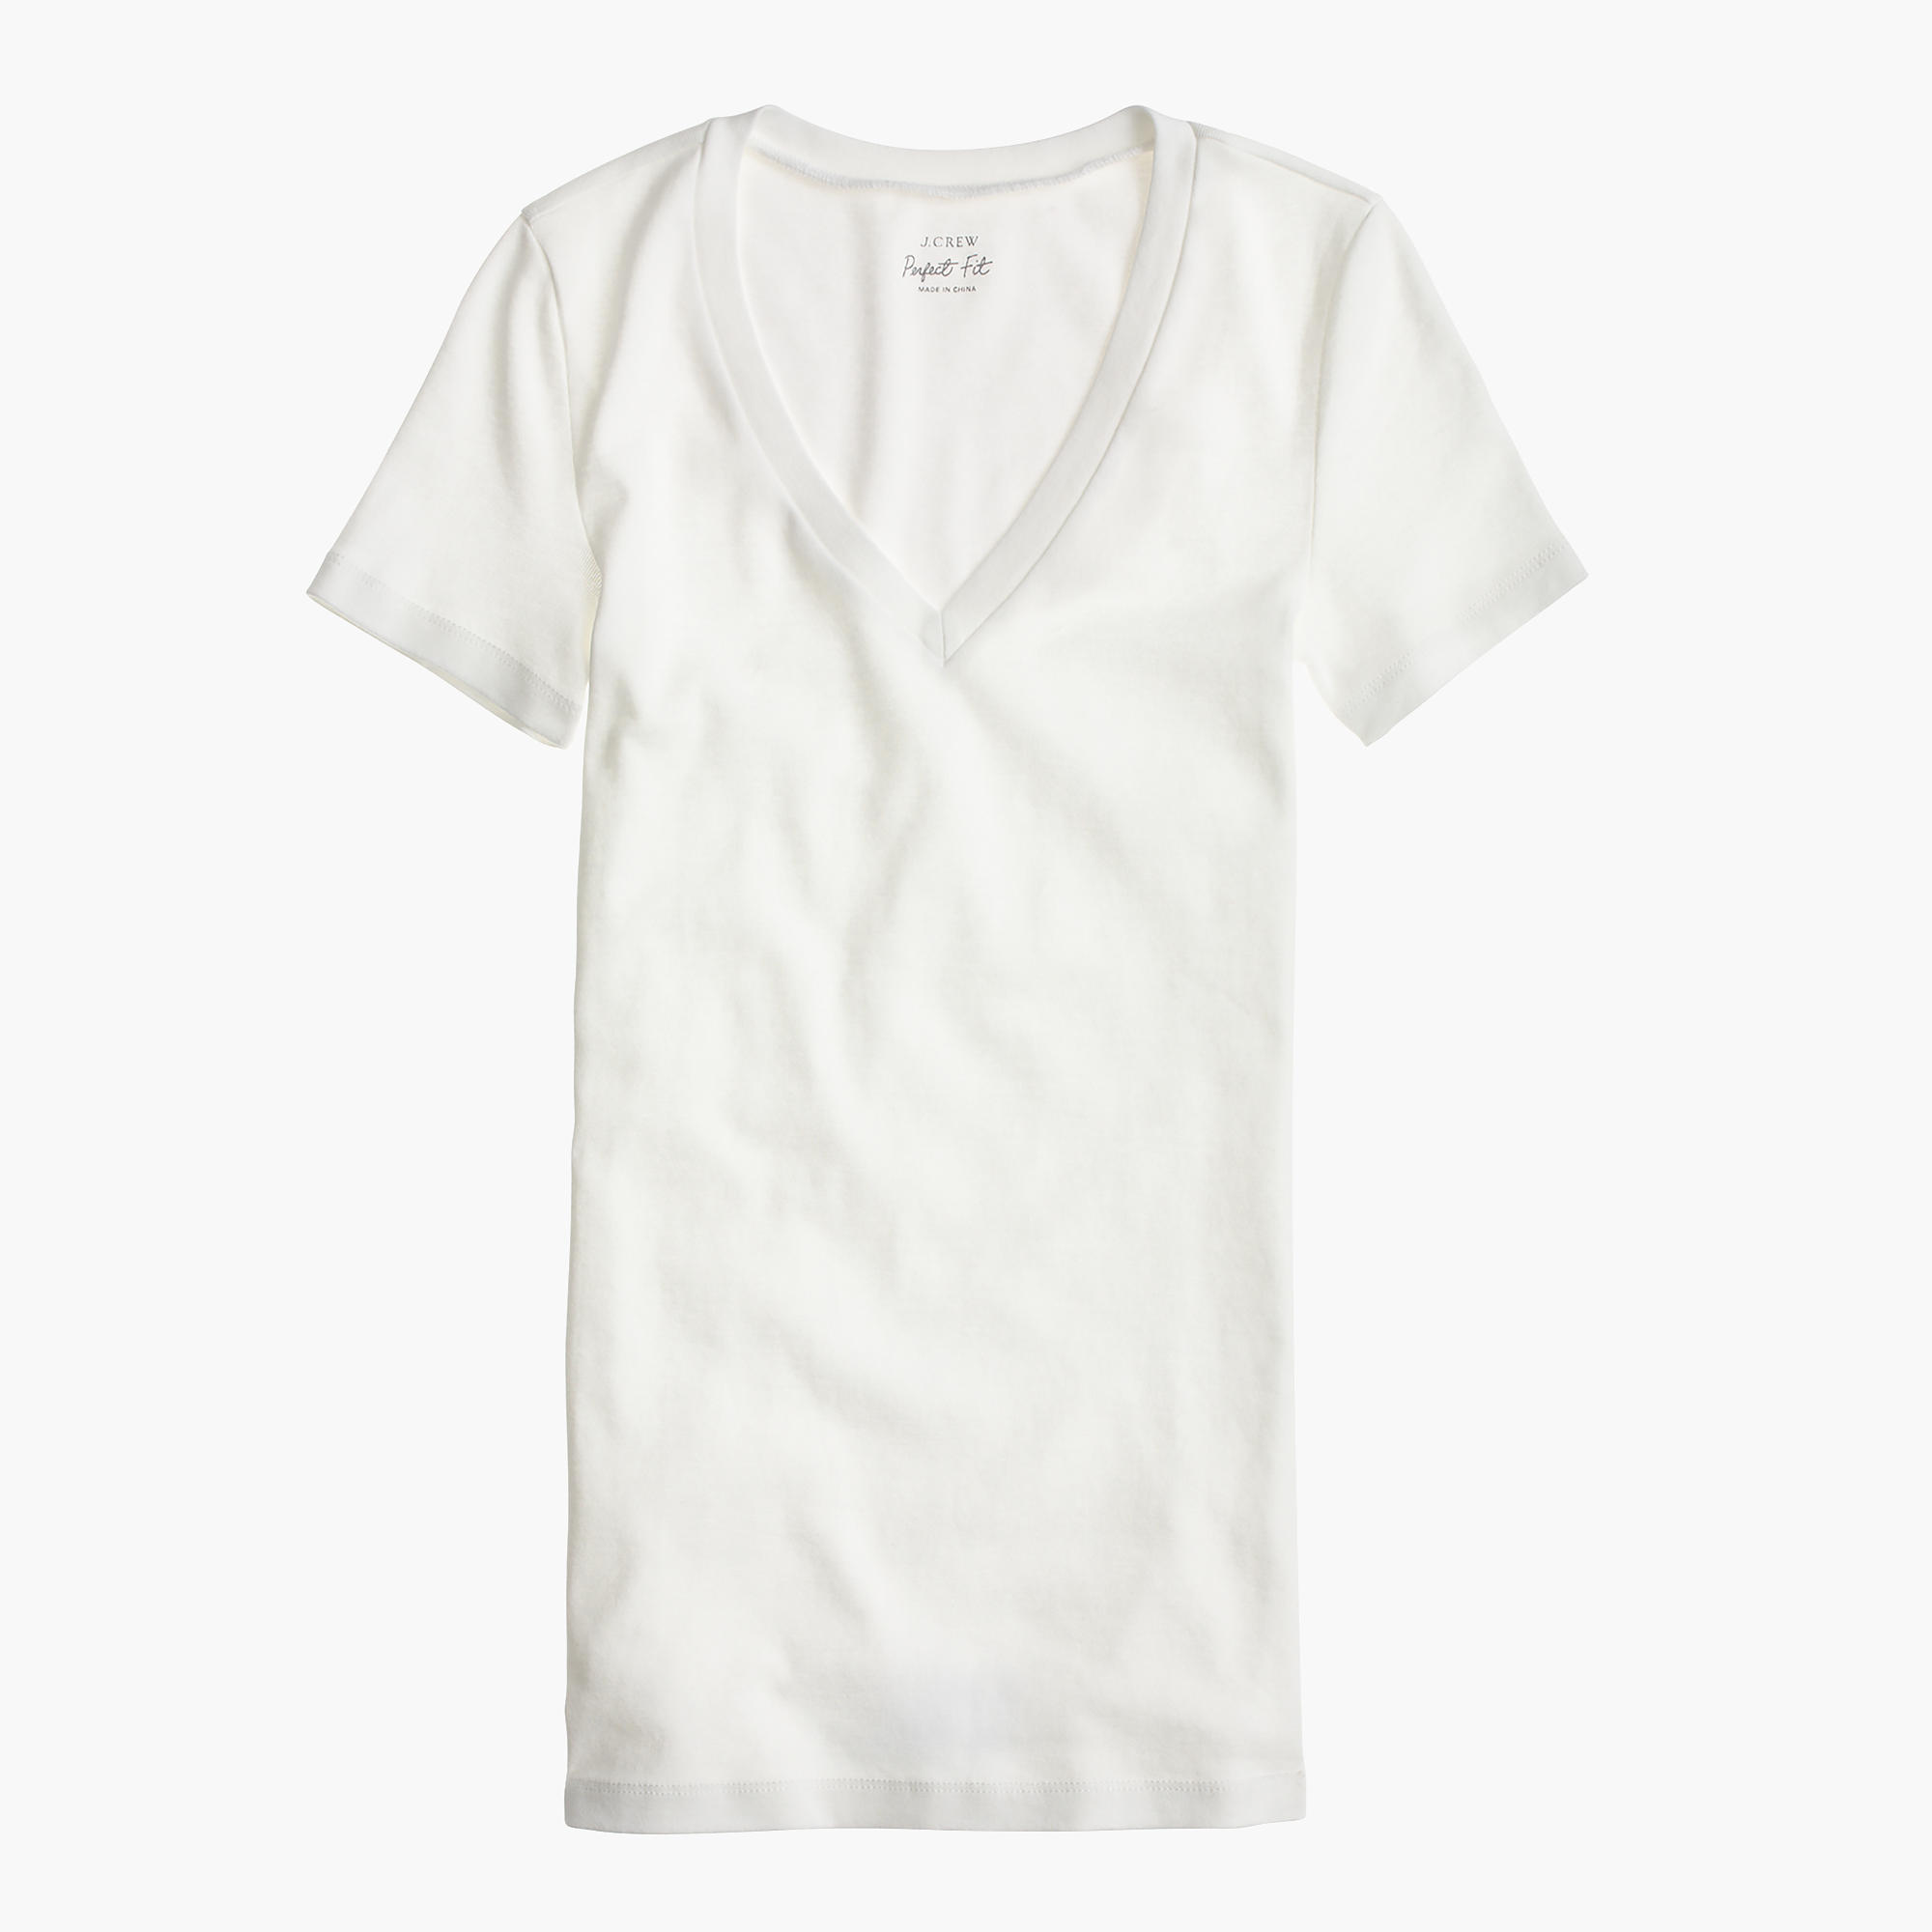 10 Best White T Shirts - Perfect White Tee Shirts To Add to Your ...